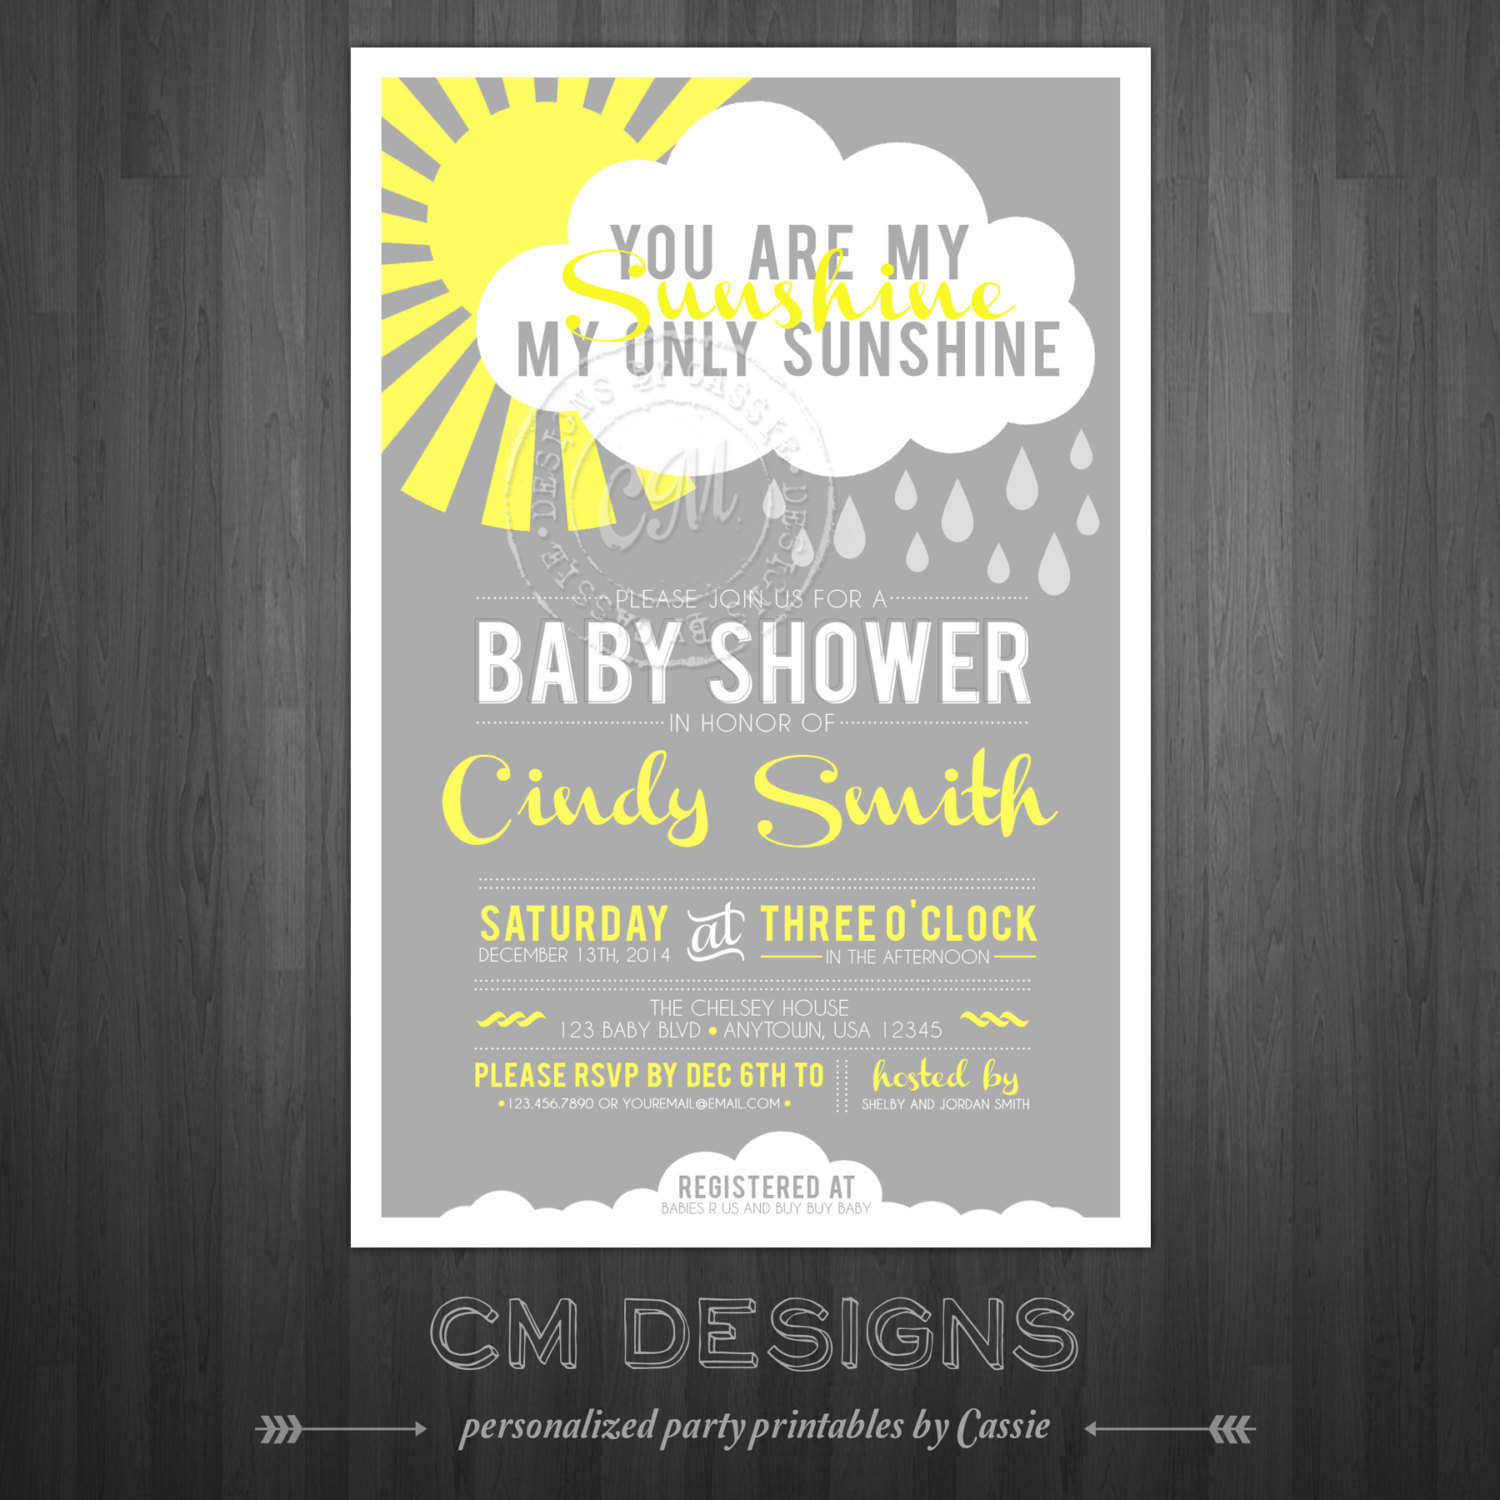 you are my sunshine baby shower invite baby shower ideas themes